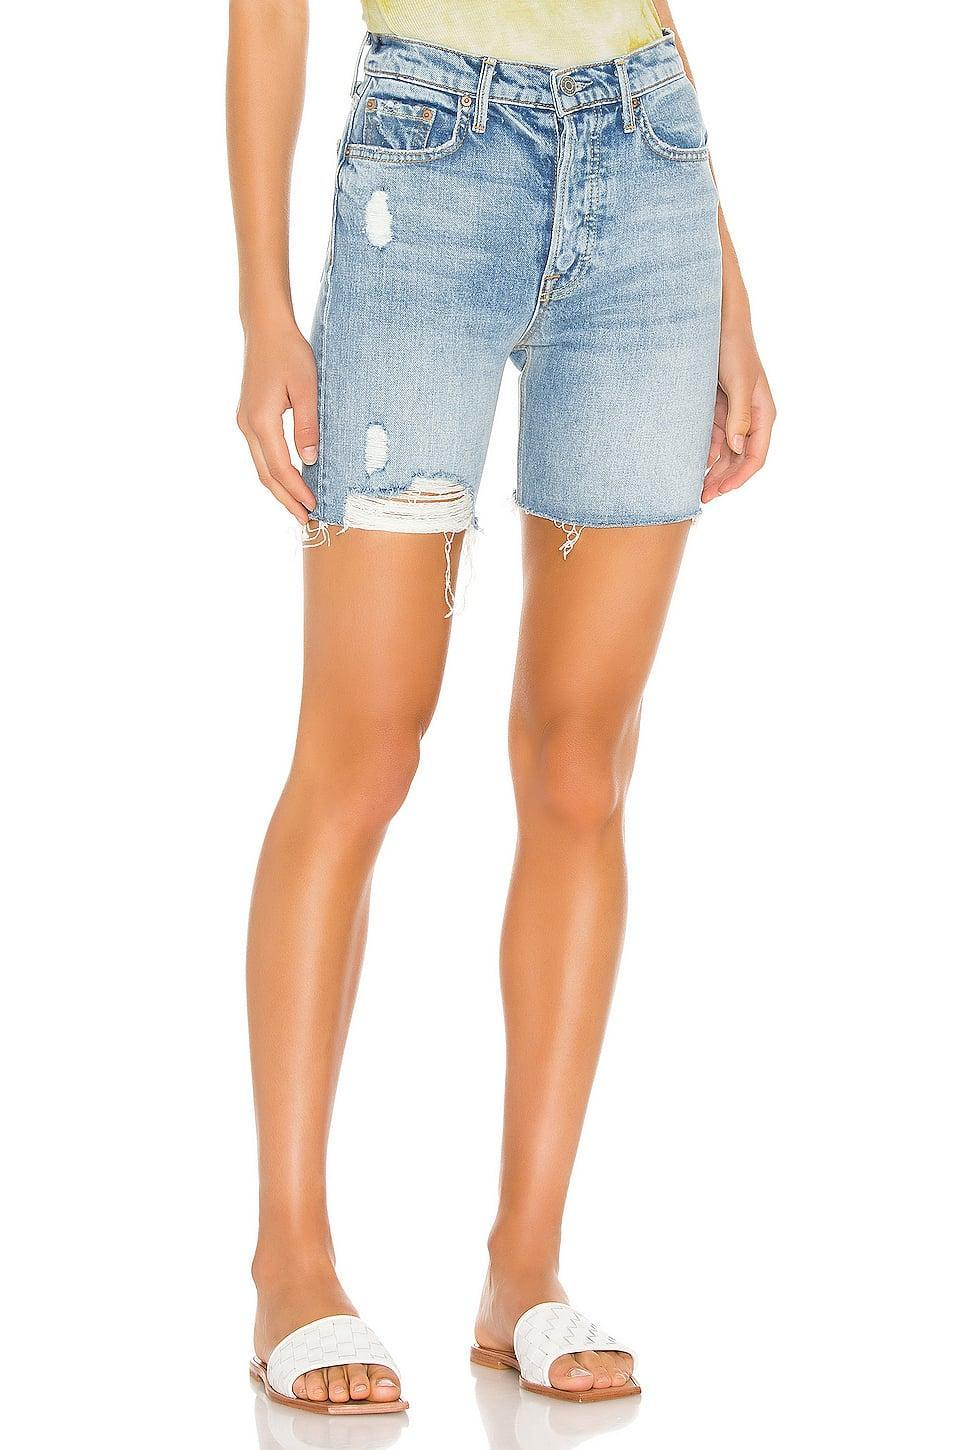 "<p>These <a href=""https://www.popsugar.com/buy/Grlfrnd-Riley-Shorts-587730?p_name=Grlfrnd%20Riley%20Shorts&retailer=revolve.com&pid=587730&price=158&evar1=fab%3Aus&evar9=45988379&evar98=https%3A%2F%2Fwww.popsugar.com%2Ffashion%2Fphoto-gallery%2F45988379%2Fimage%2F47603866%2FGrlfrnd-Riley-Short&list1=shopping%2Cdenim%2Cshorts%2Csummer%2Cdenim%20shorts%2Csummer%20fashion&prop13=mobile&pdata=1"" class=""link rapid-noclick-resp"" rel=""nofollow noopener"" target=""_blank"" data-ylk=""slk:Grlfrnd Riley Shorts"">Grlfrnd Riley Shorts</a> ($158) are what we want to wear on weekends.</p>"